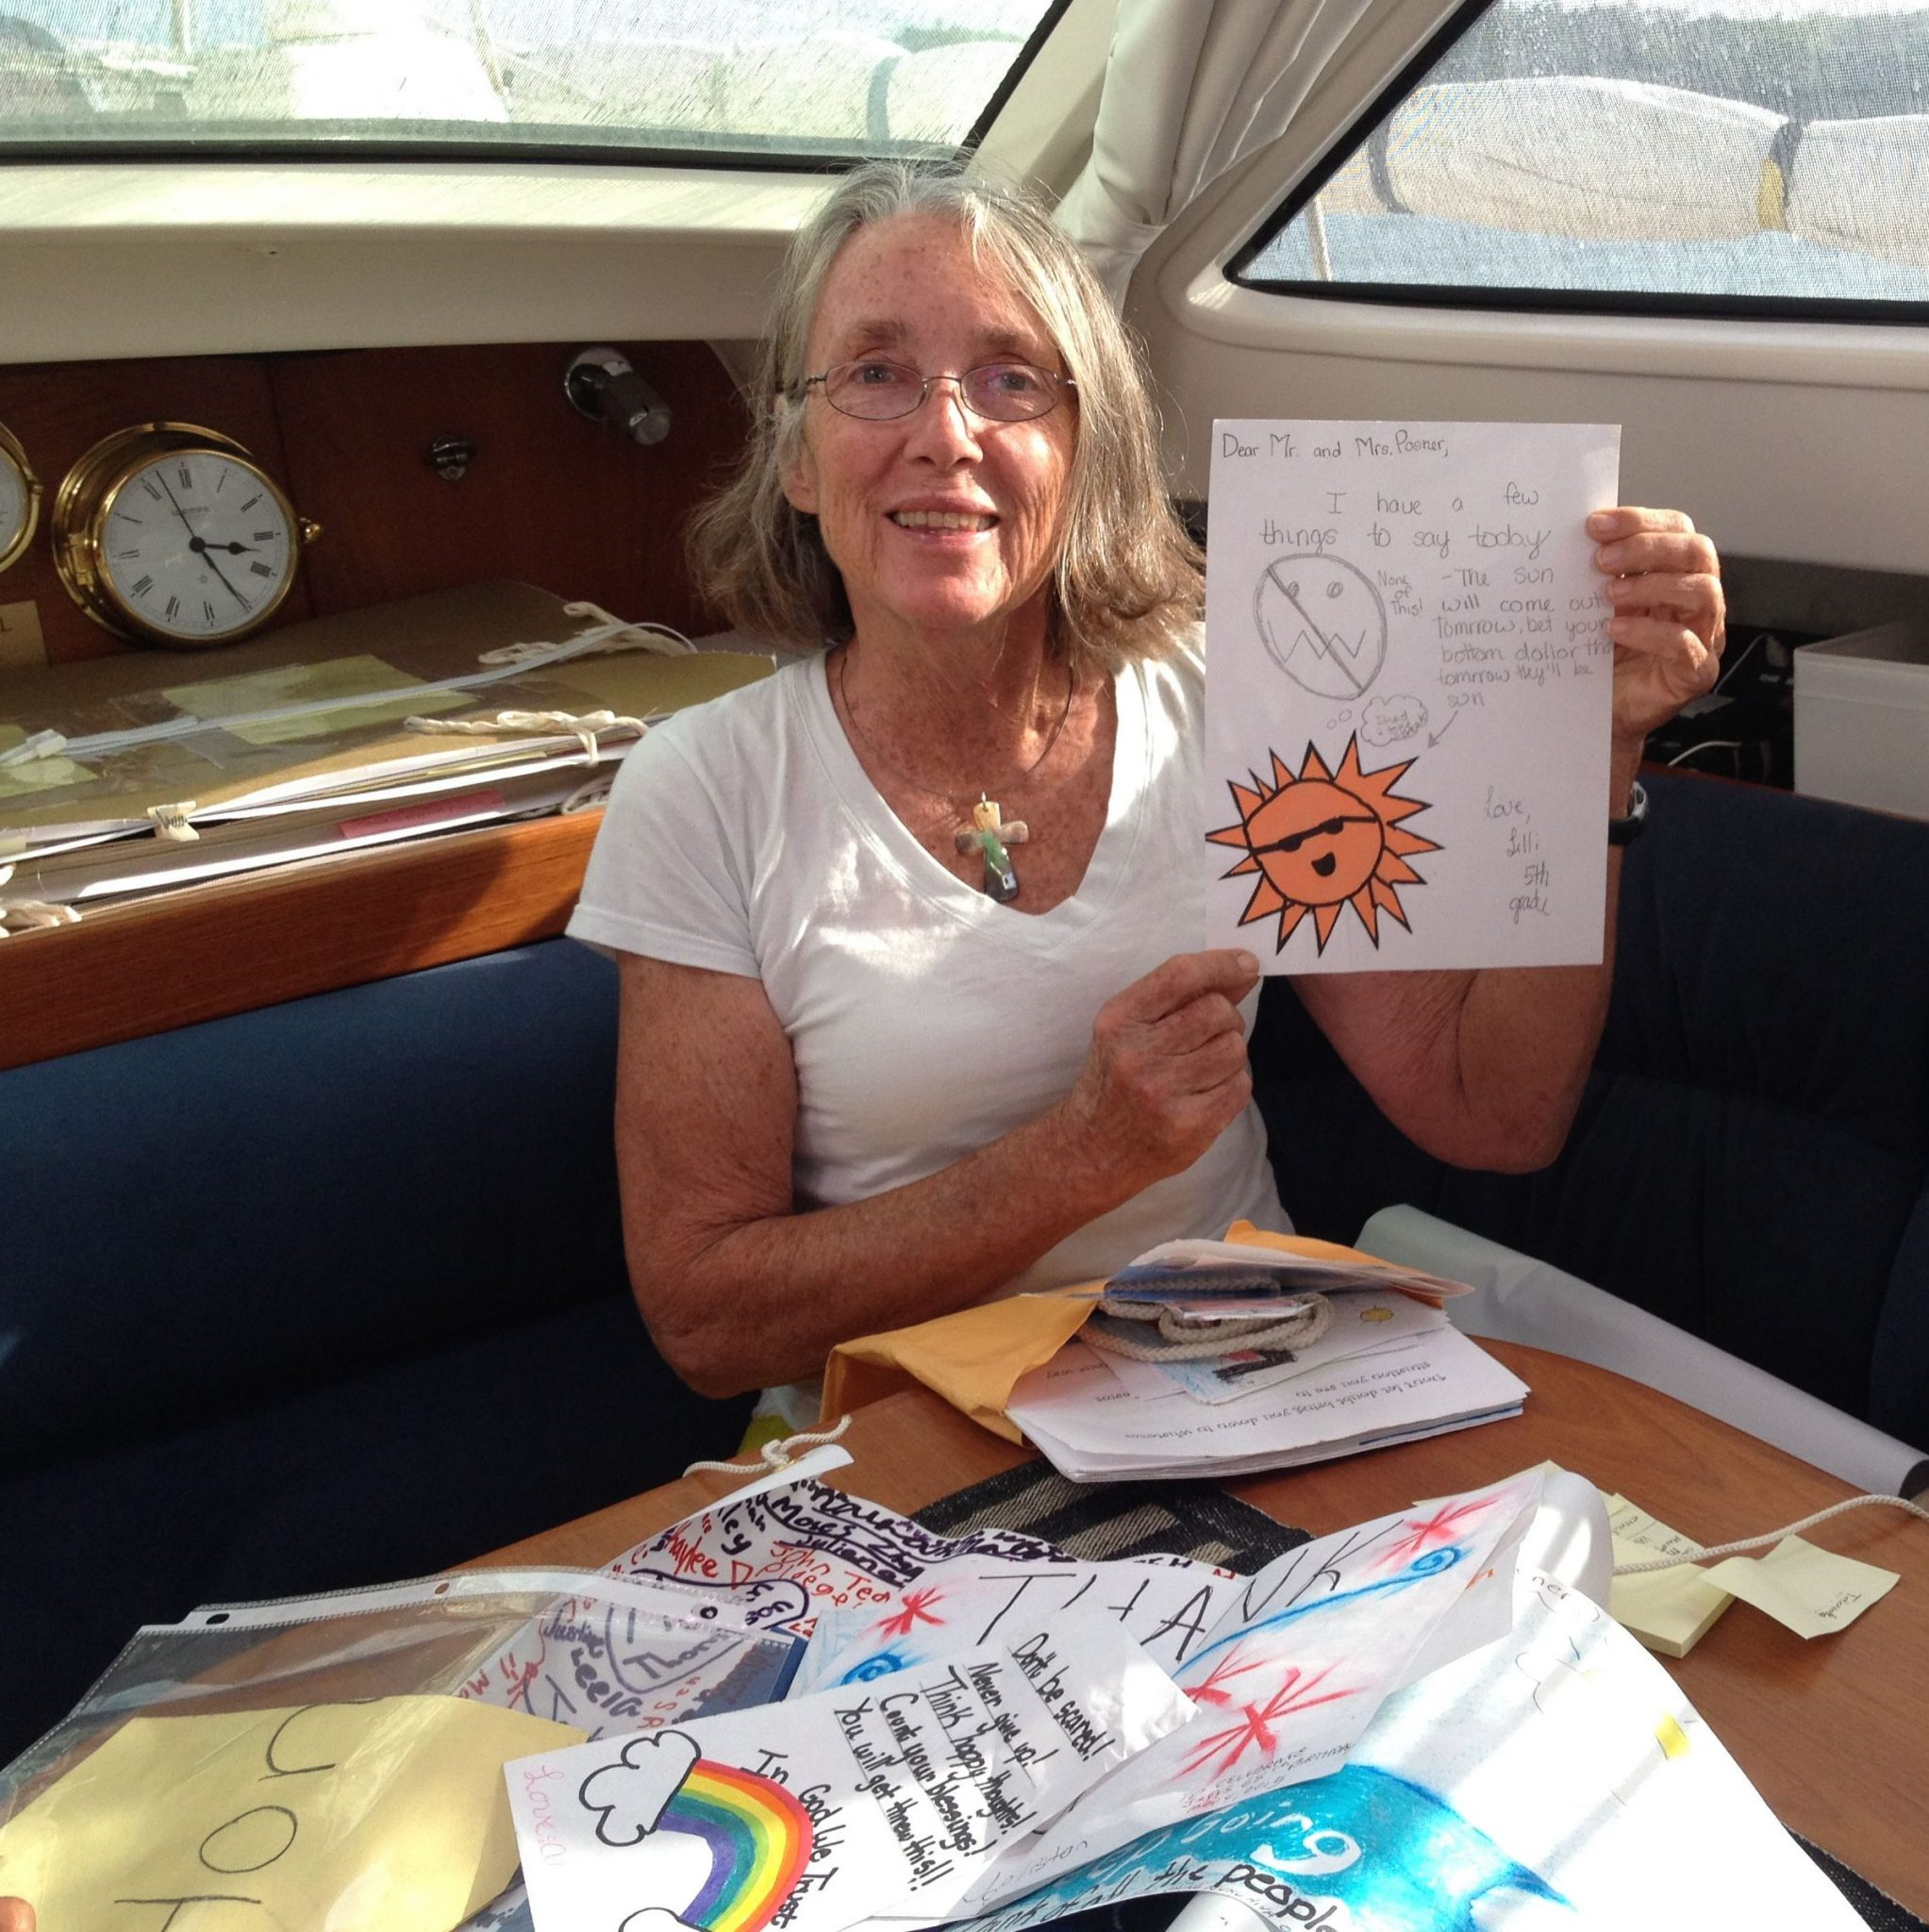 54. Lilli, a student in the 5th grade at Round Hill Elementary School, was one of many students who kindly made wonderful cards for us to open as we sail Joyful around the world. I opened this on my birthday! Thank you Lilli and all Bears!